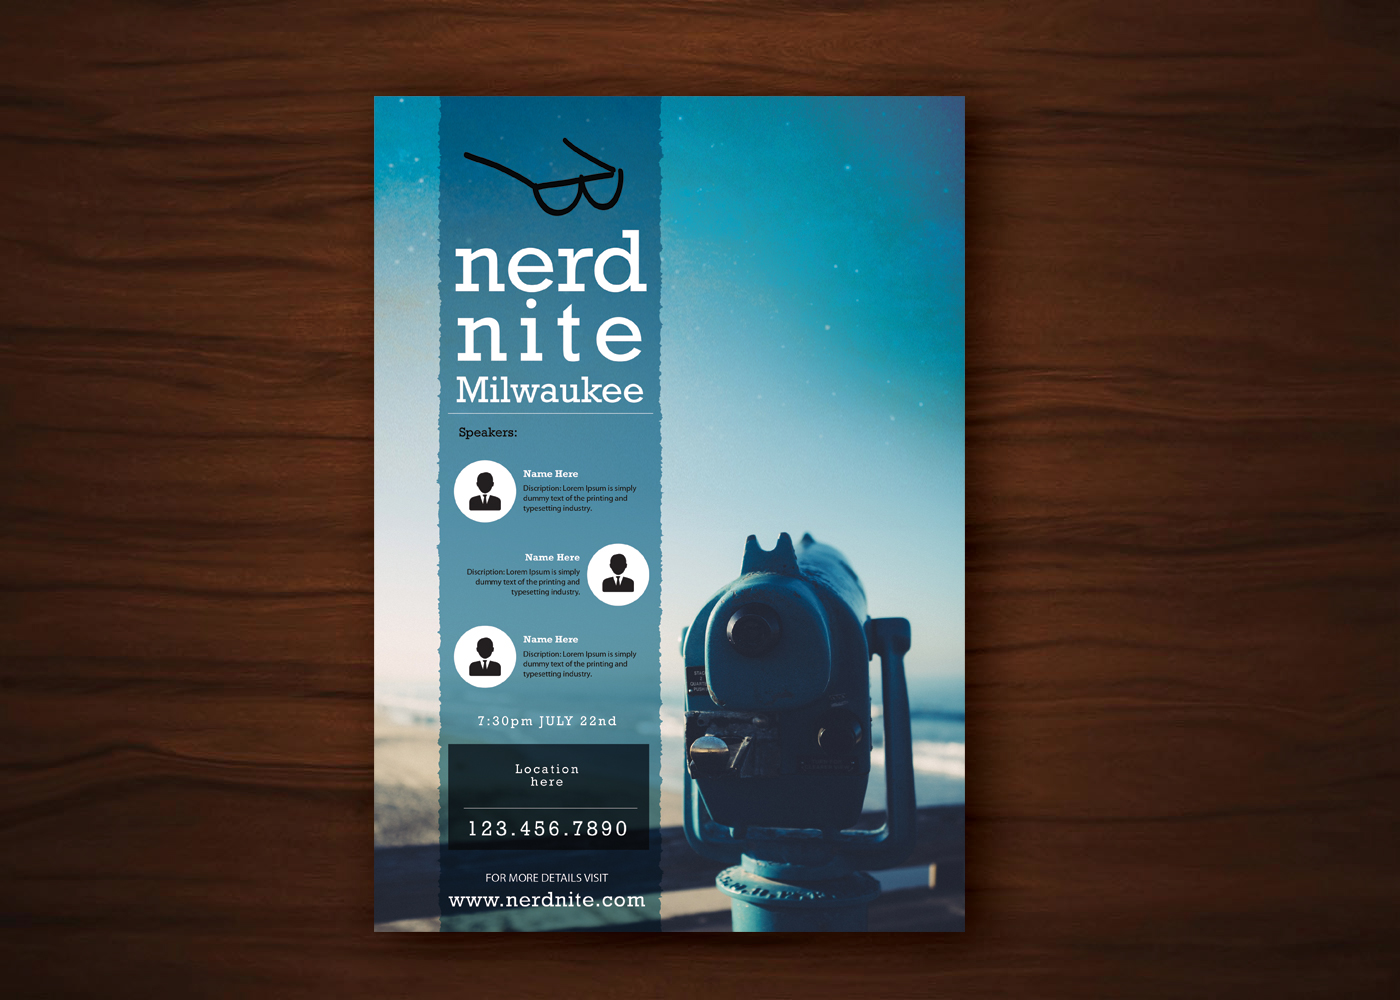 Poster design uk - Poster Design By Uk For Nerd Nite Milwaukee Monthly Event Poster Template Help Make Nerds